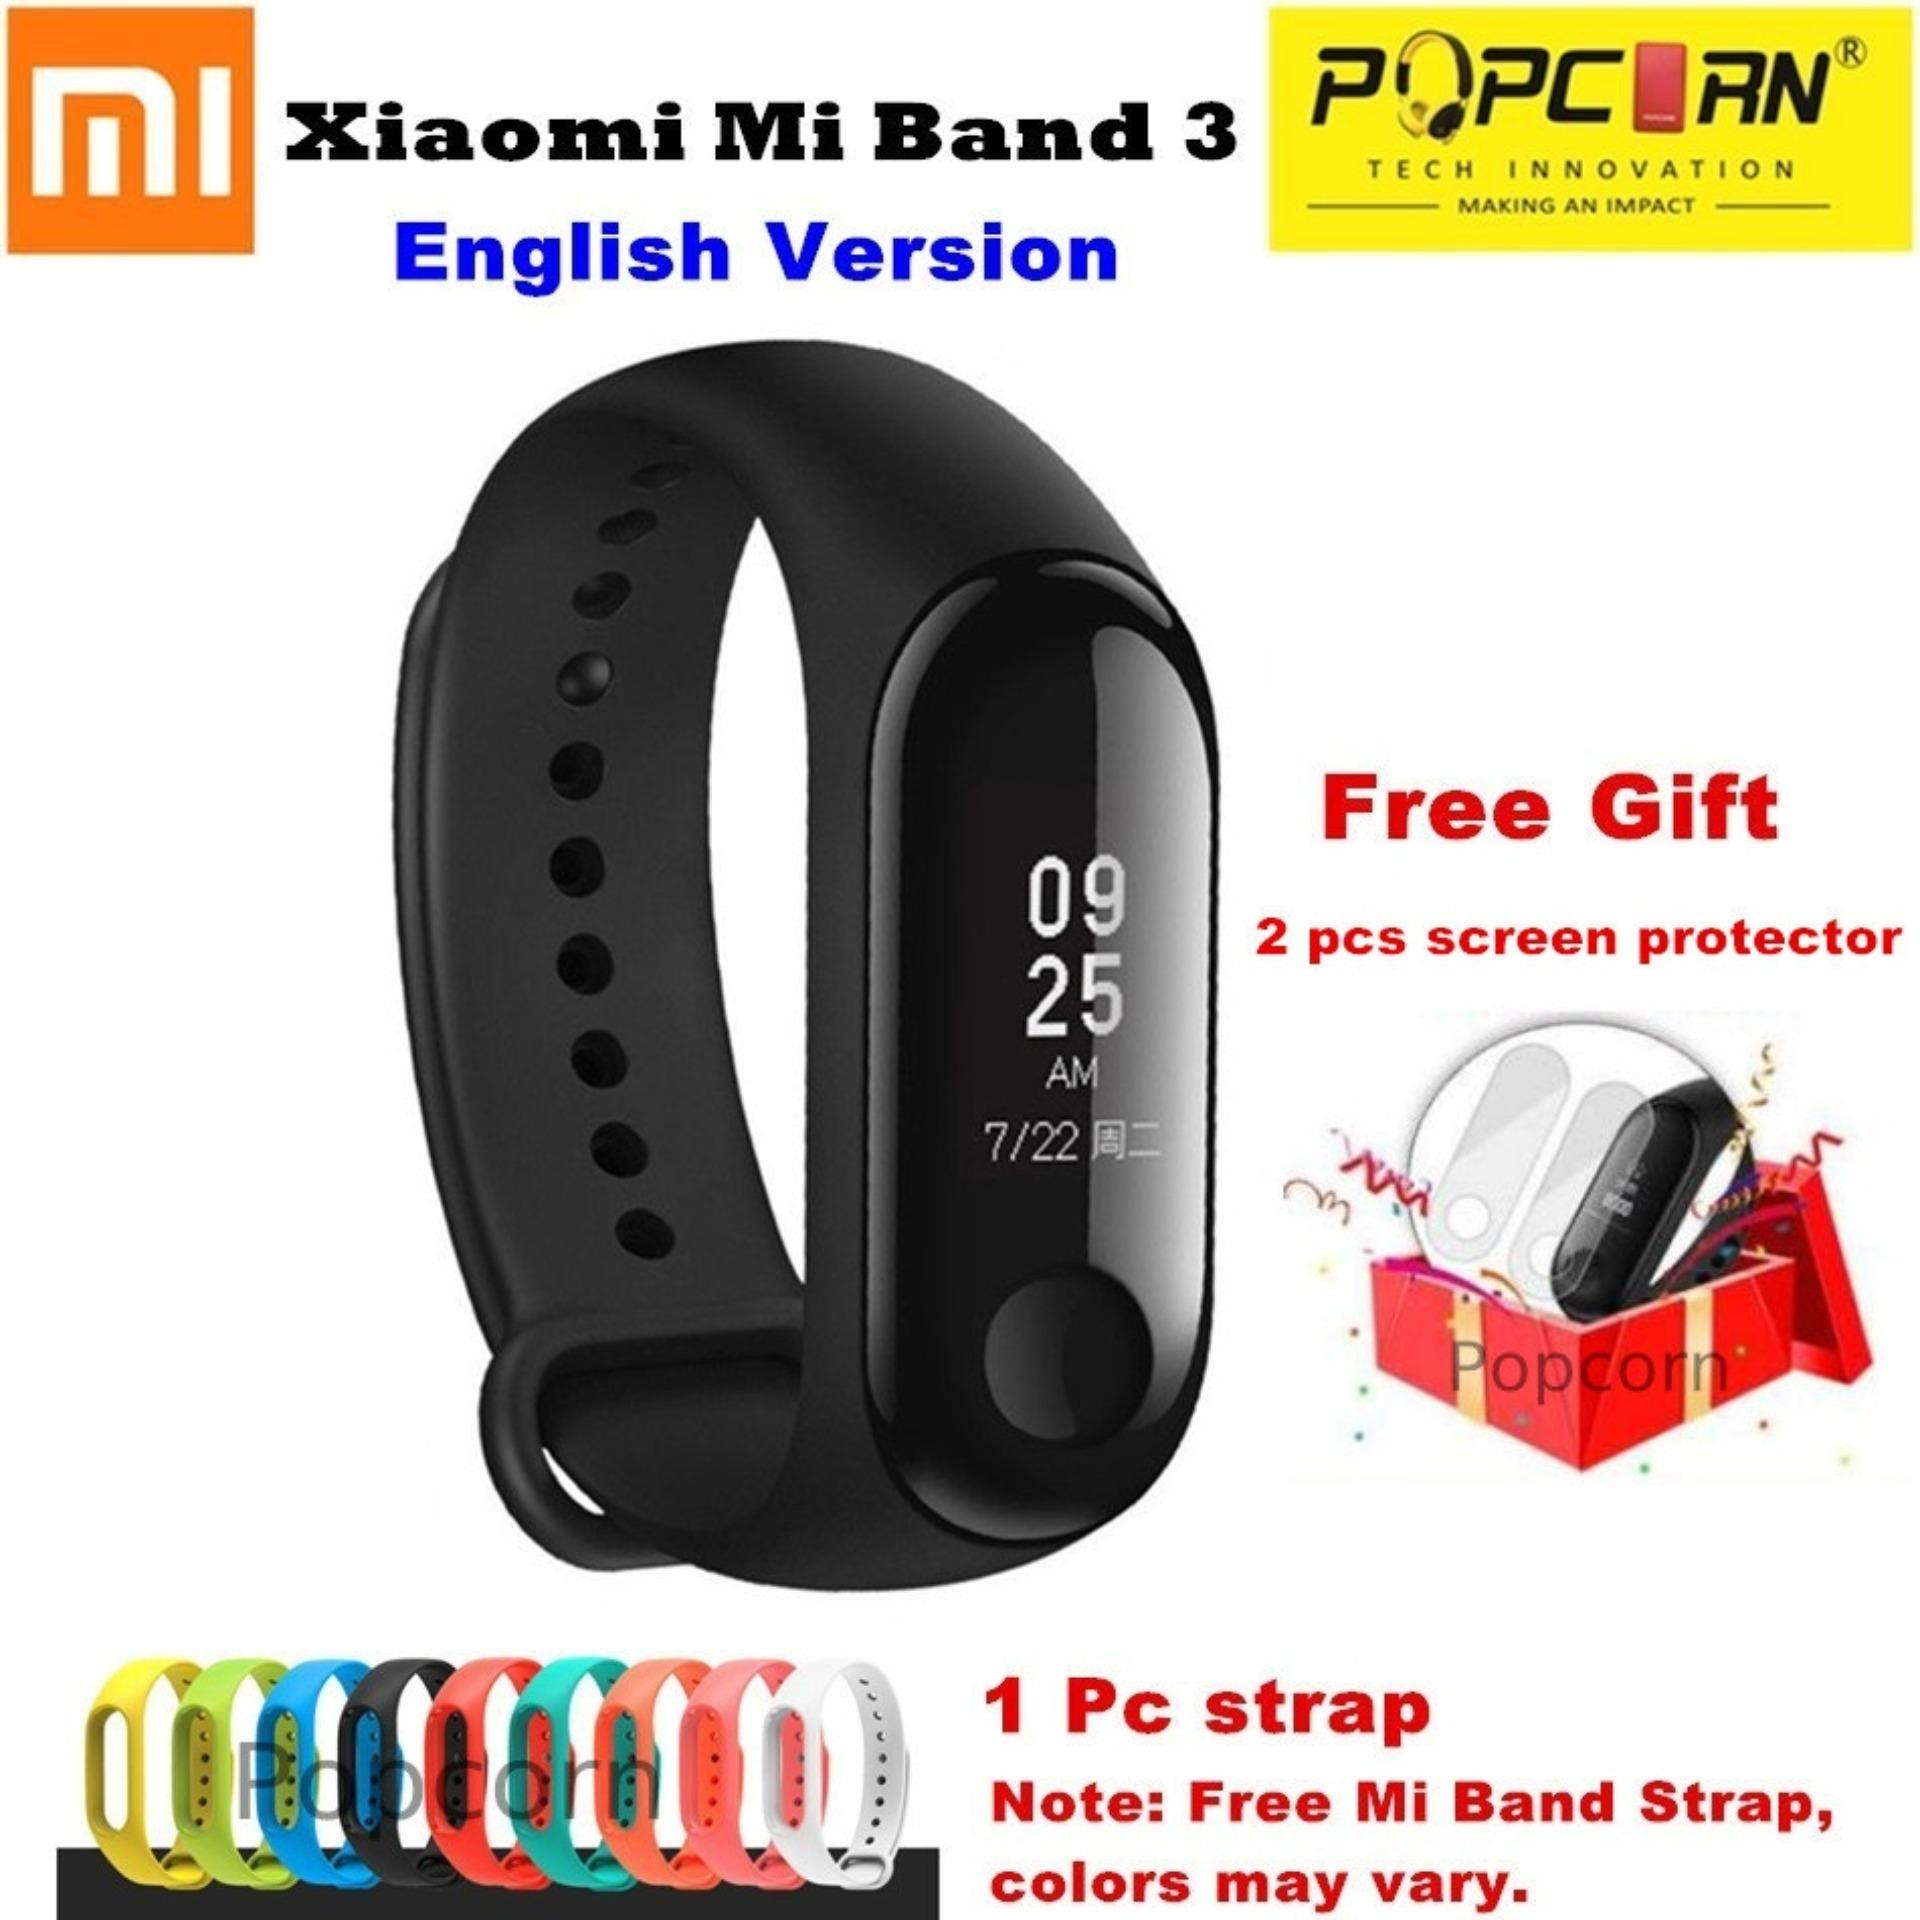 Fitness Tracker For Sale Band Prices Brands Specs In Xiaomi Mi 2 Oled Strap Stainless Steel Mijobs Silver Plis Original 3 English Version Screen Smart Bracelet Wristband Heart Rate Monitor